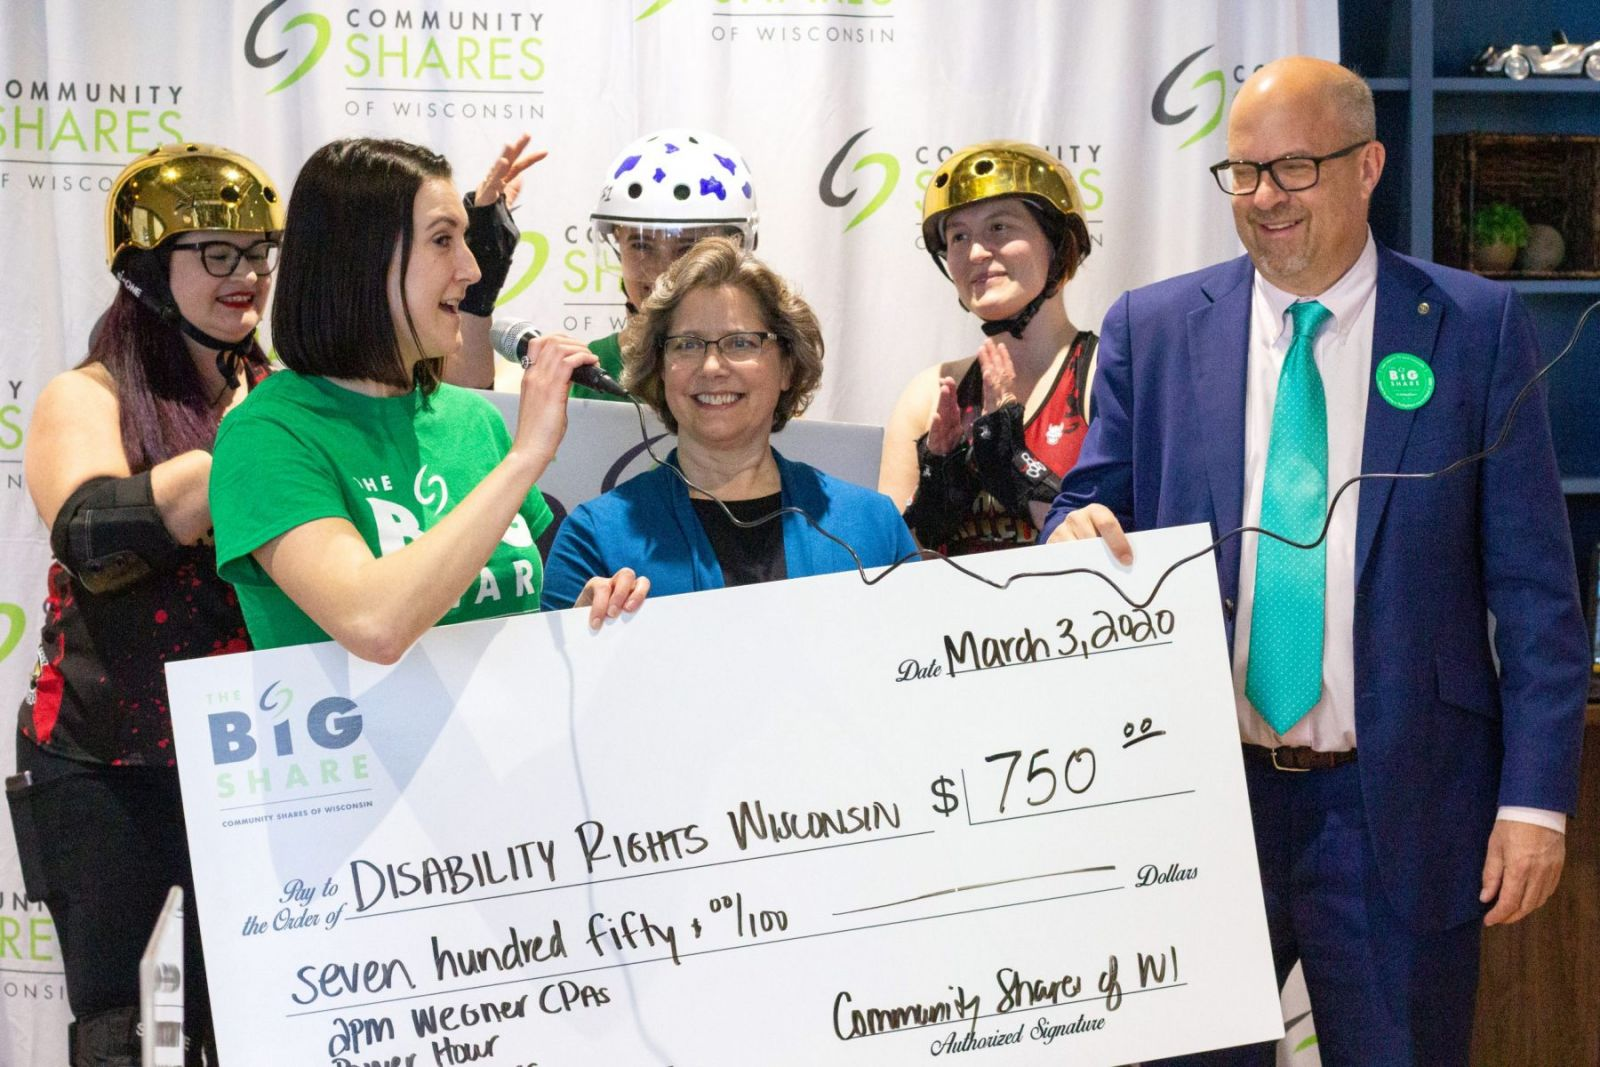 disability rights wi Big Share prize check